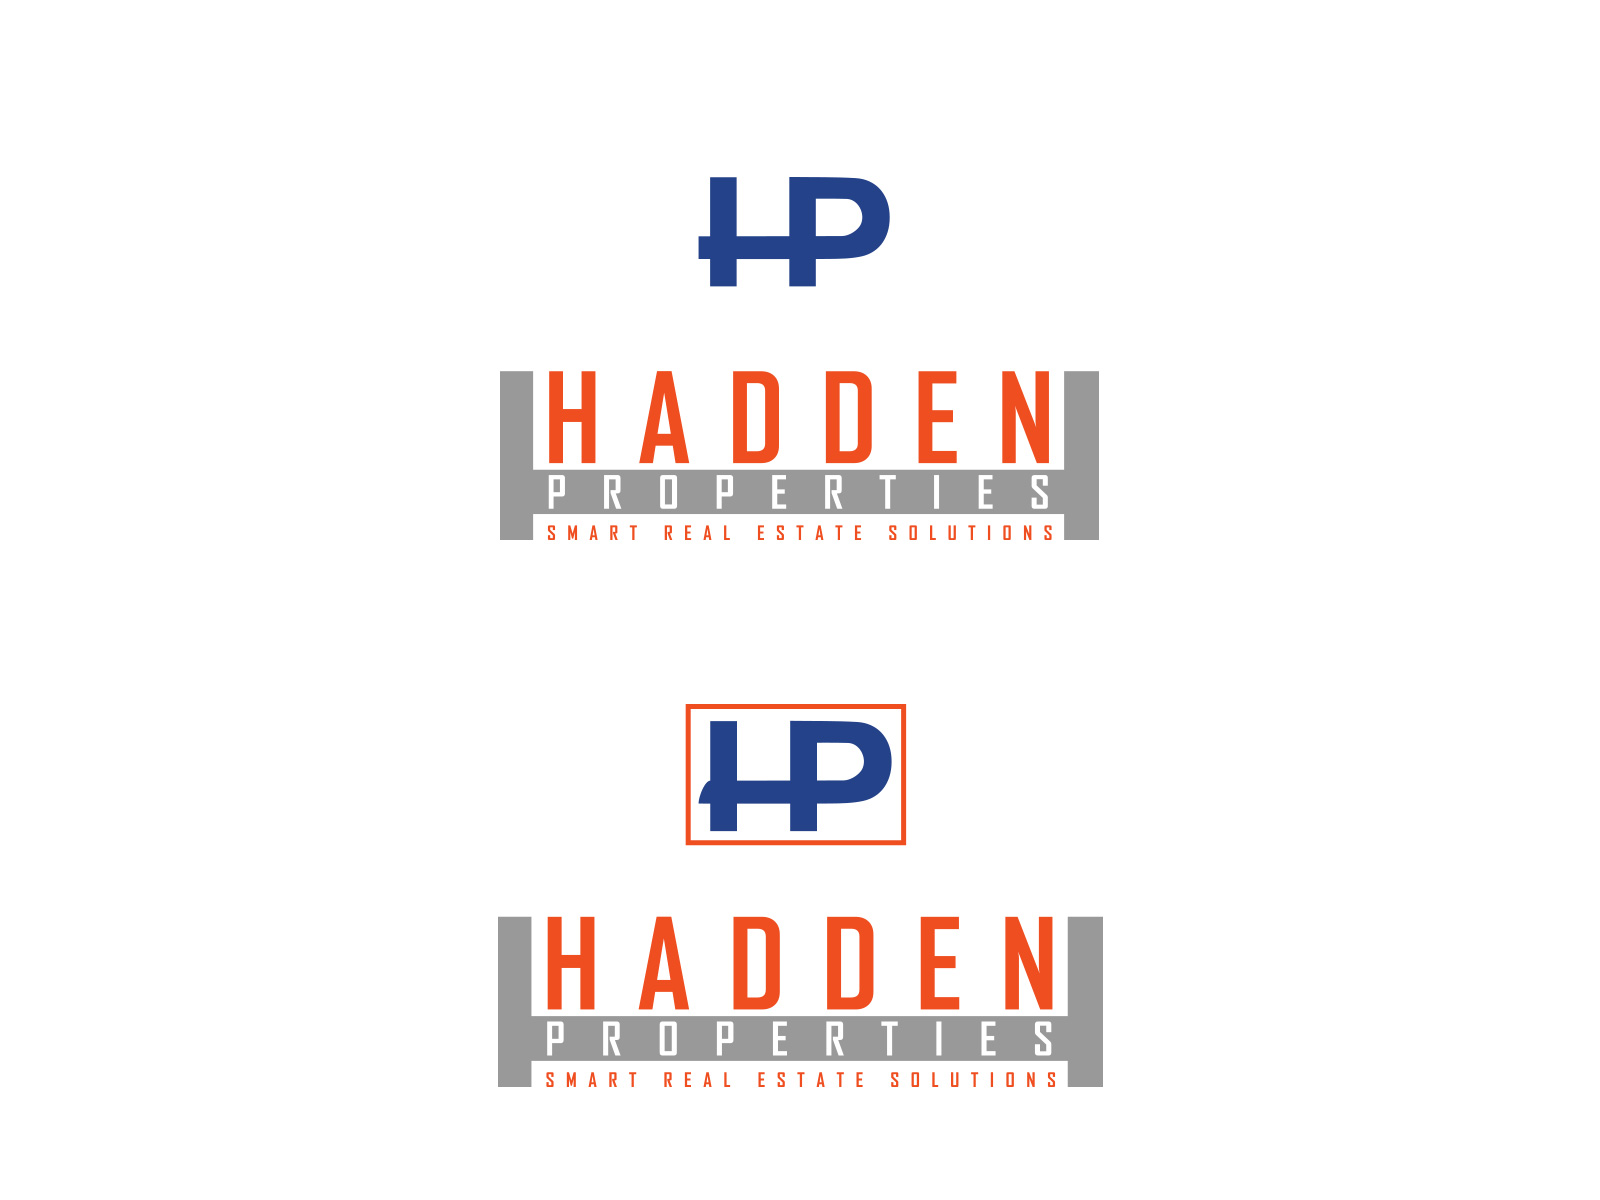 Logo Design by olii - Entry No. 180 in the Logo Design Contest Artistic Logo Design for Hadden Properties.